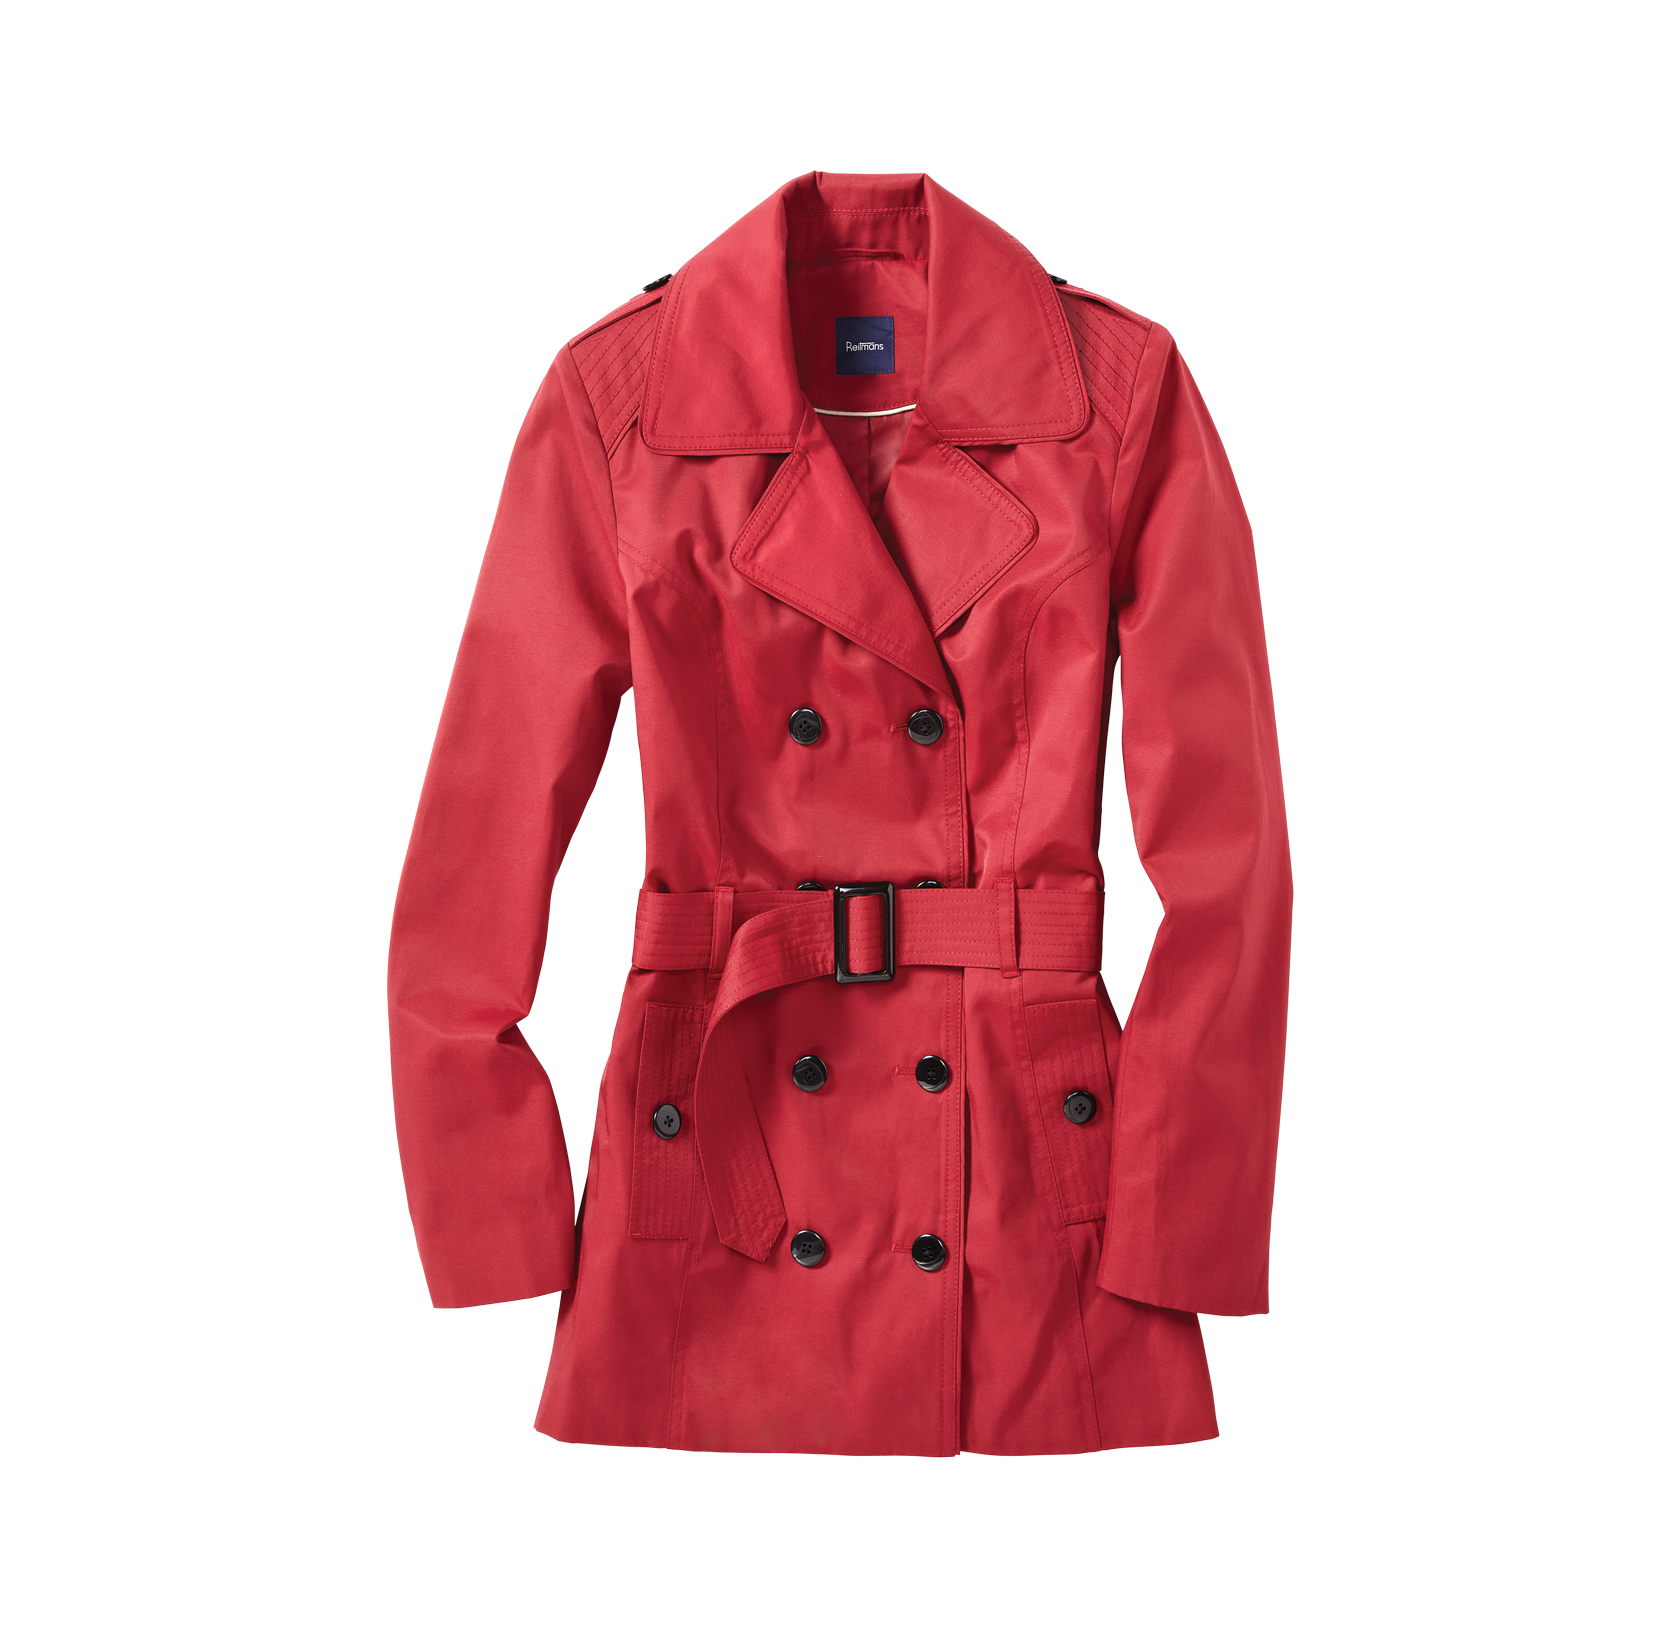 spring coats at reitmans girls of t o #1: reitmans